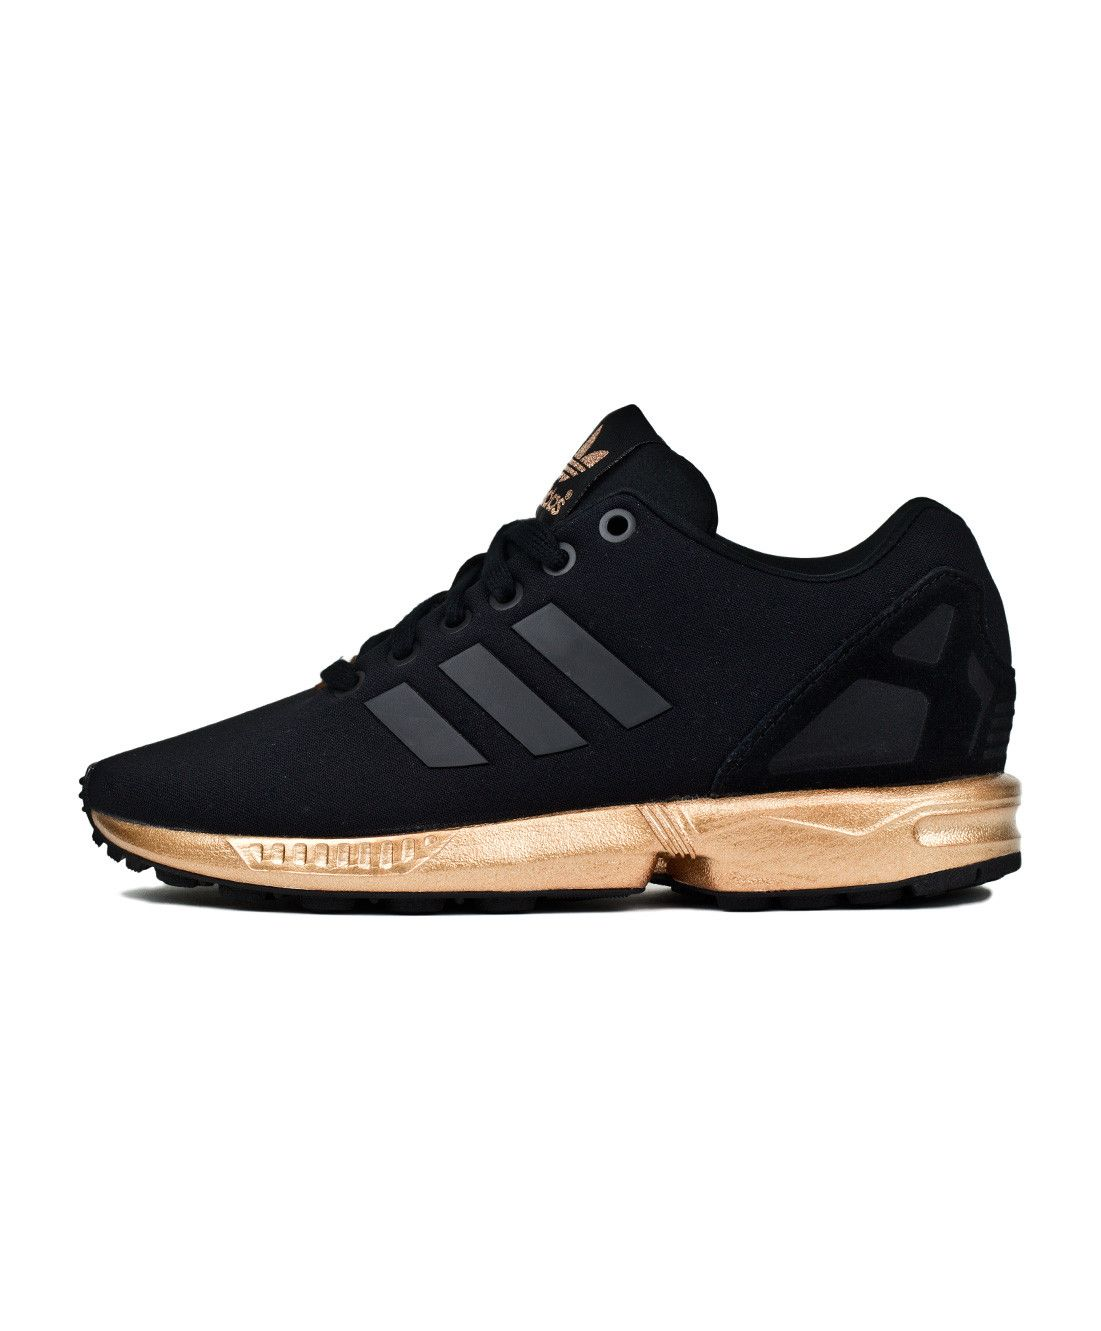 adidas zx flux womens core black copper s78977 nz